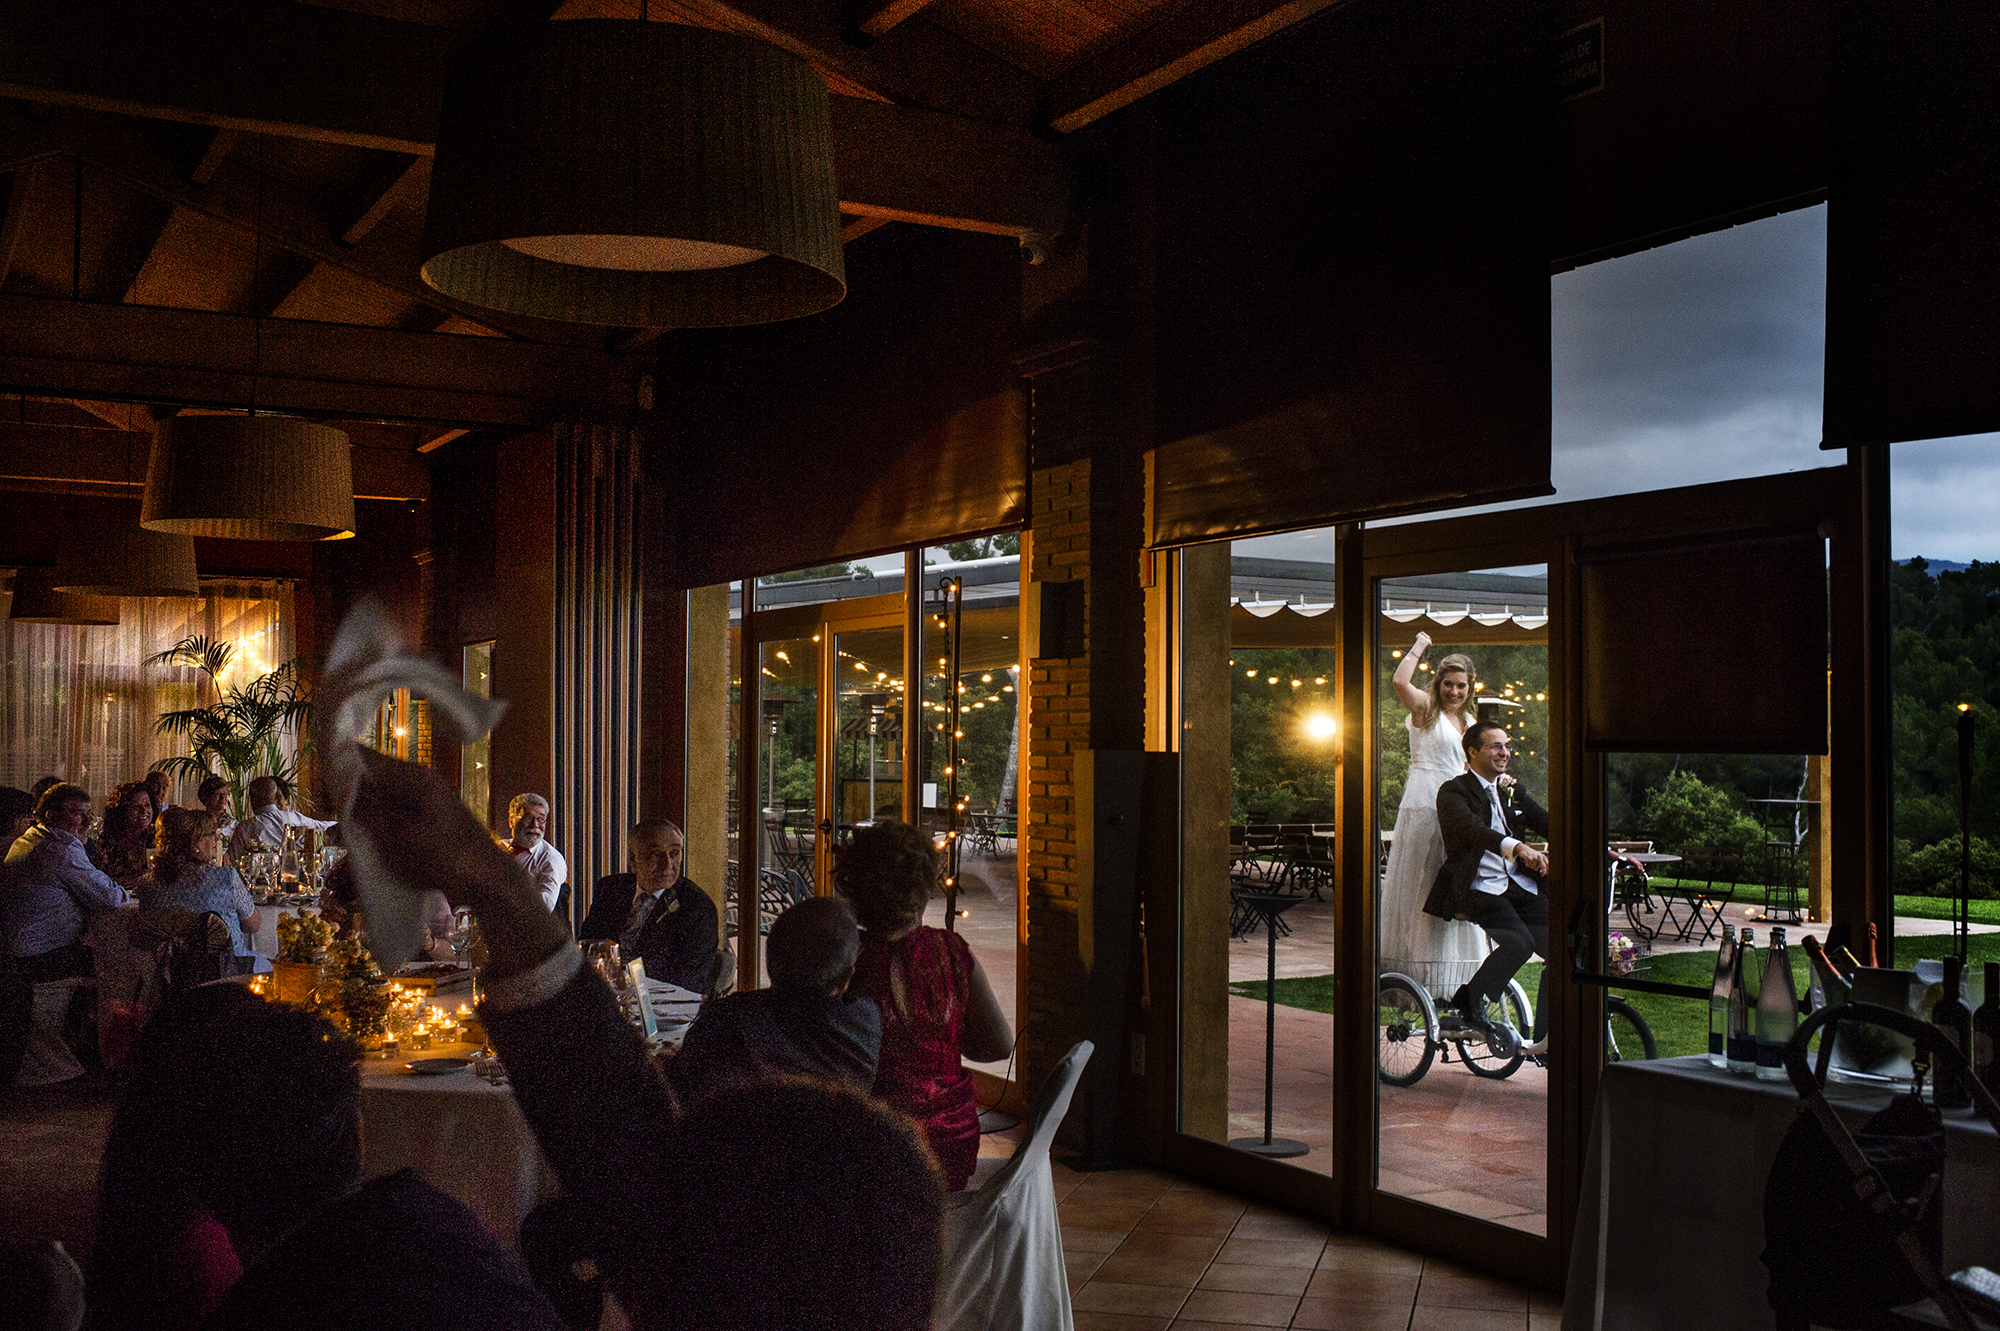 Bride riding on bike with groom entering reception - photo by Victor Lax